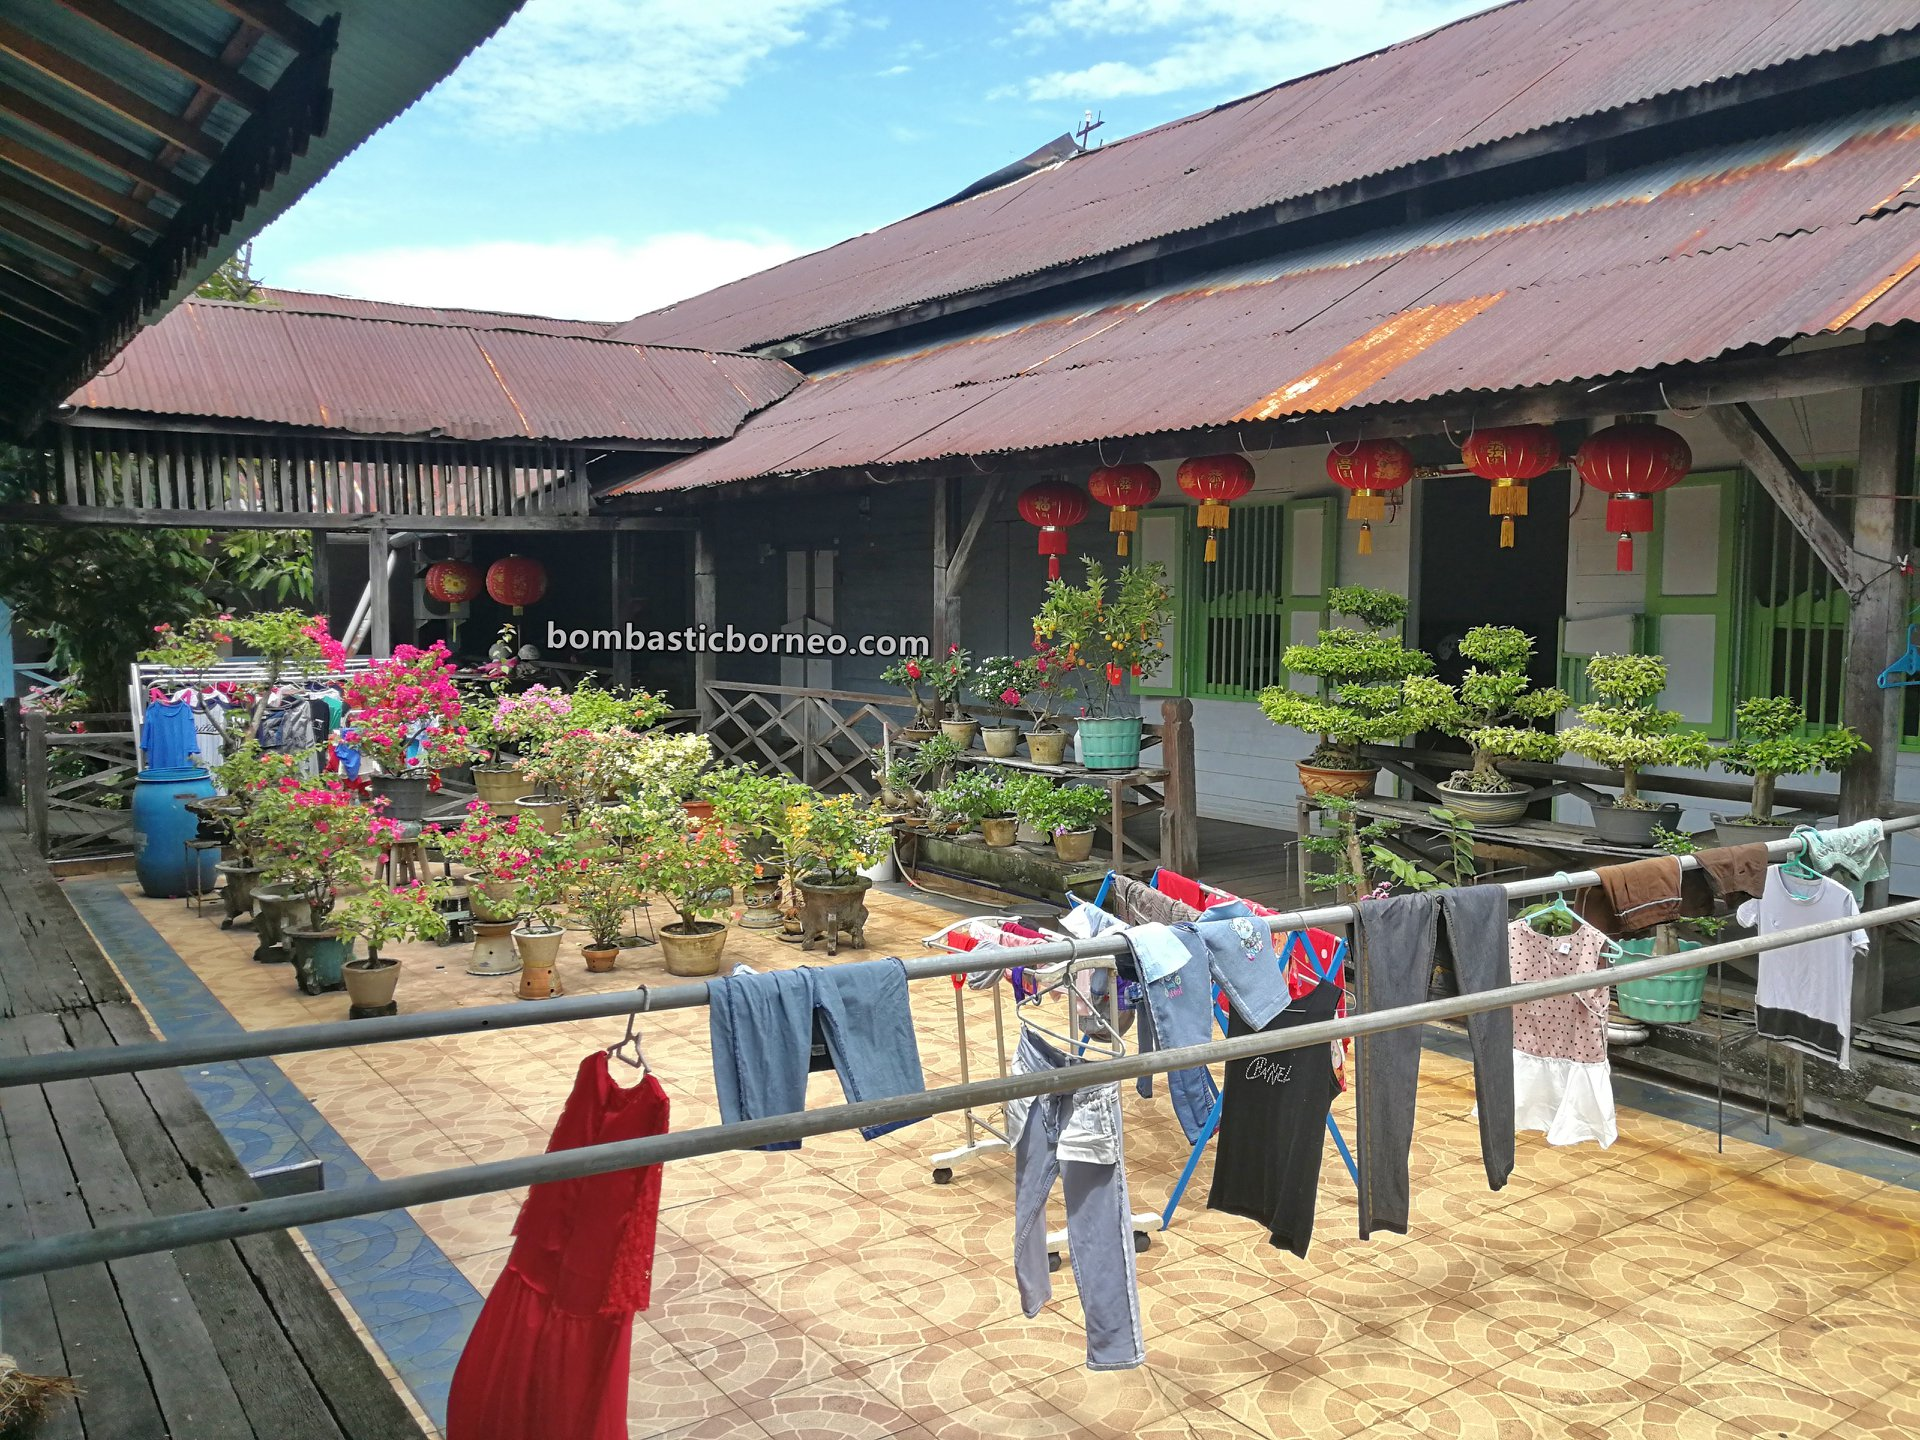 authentic, traditional house, chinese, heritage, historical, destination, Indonesia,, Kota Singkawang, Tourism, tourist attraction, Travel Guide, Trans Borneo, 穿越婆罗洲游踪, 印尼西加里曼丹, 山口洋旅游景点,